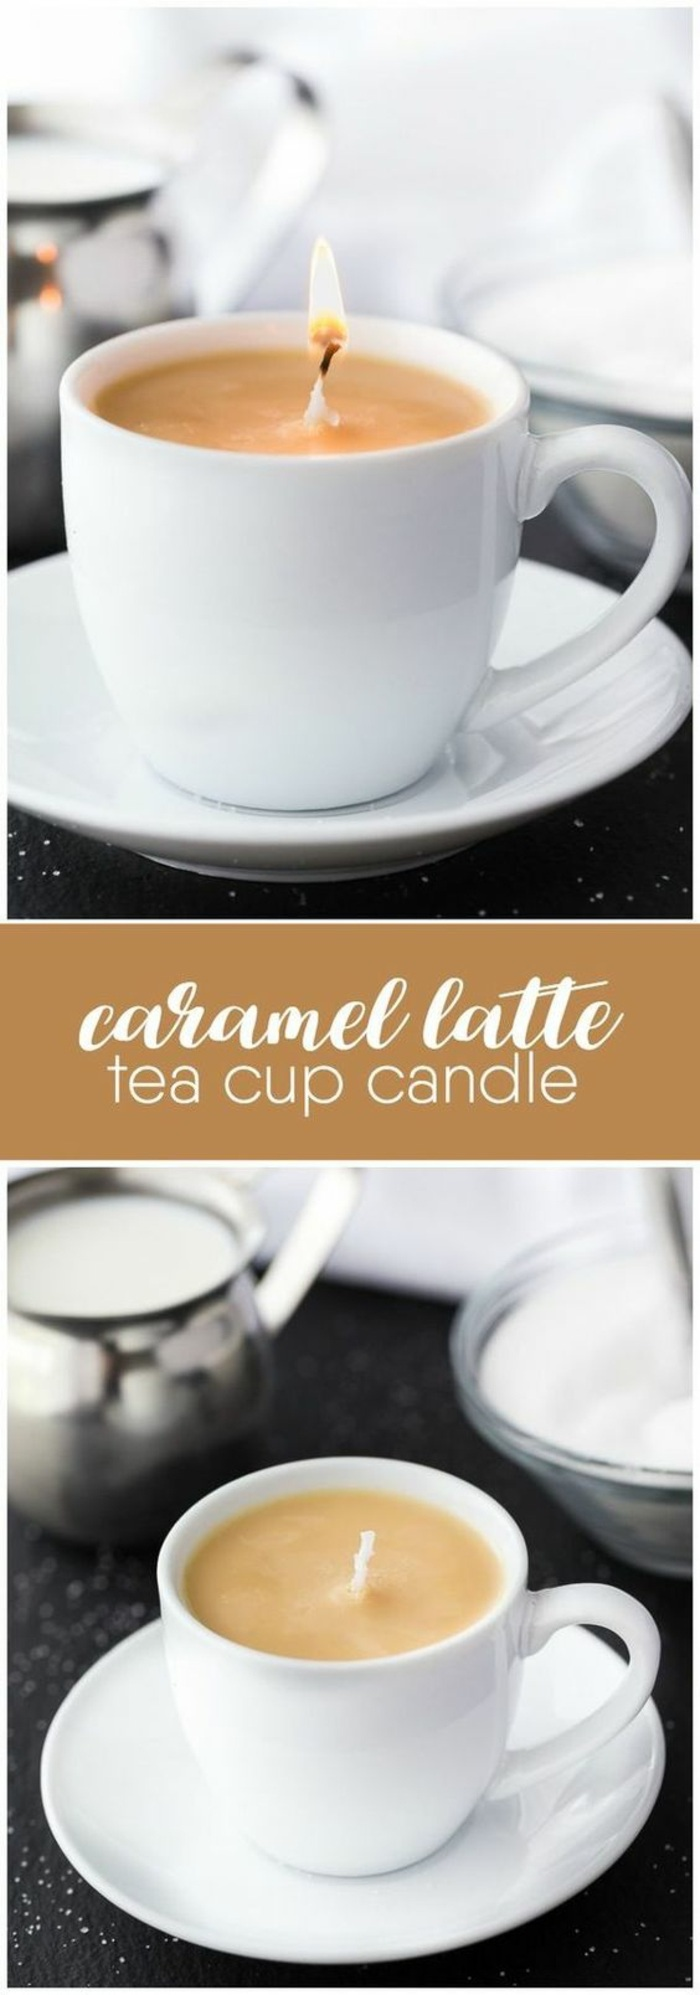 caramel latte, tea cup candle, candle wedding favors, white ceramic tea cup and plate